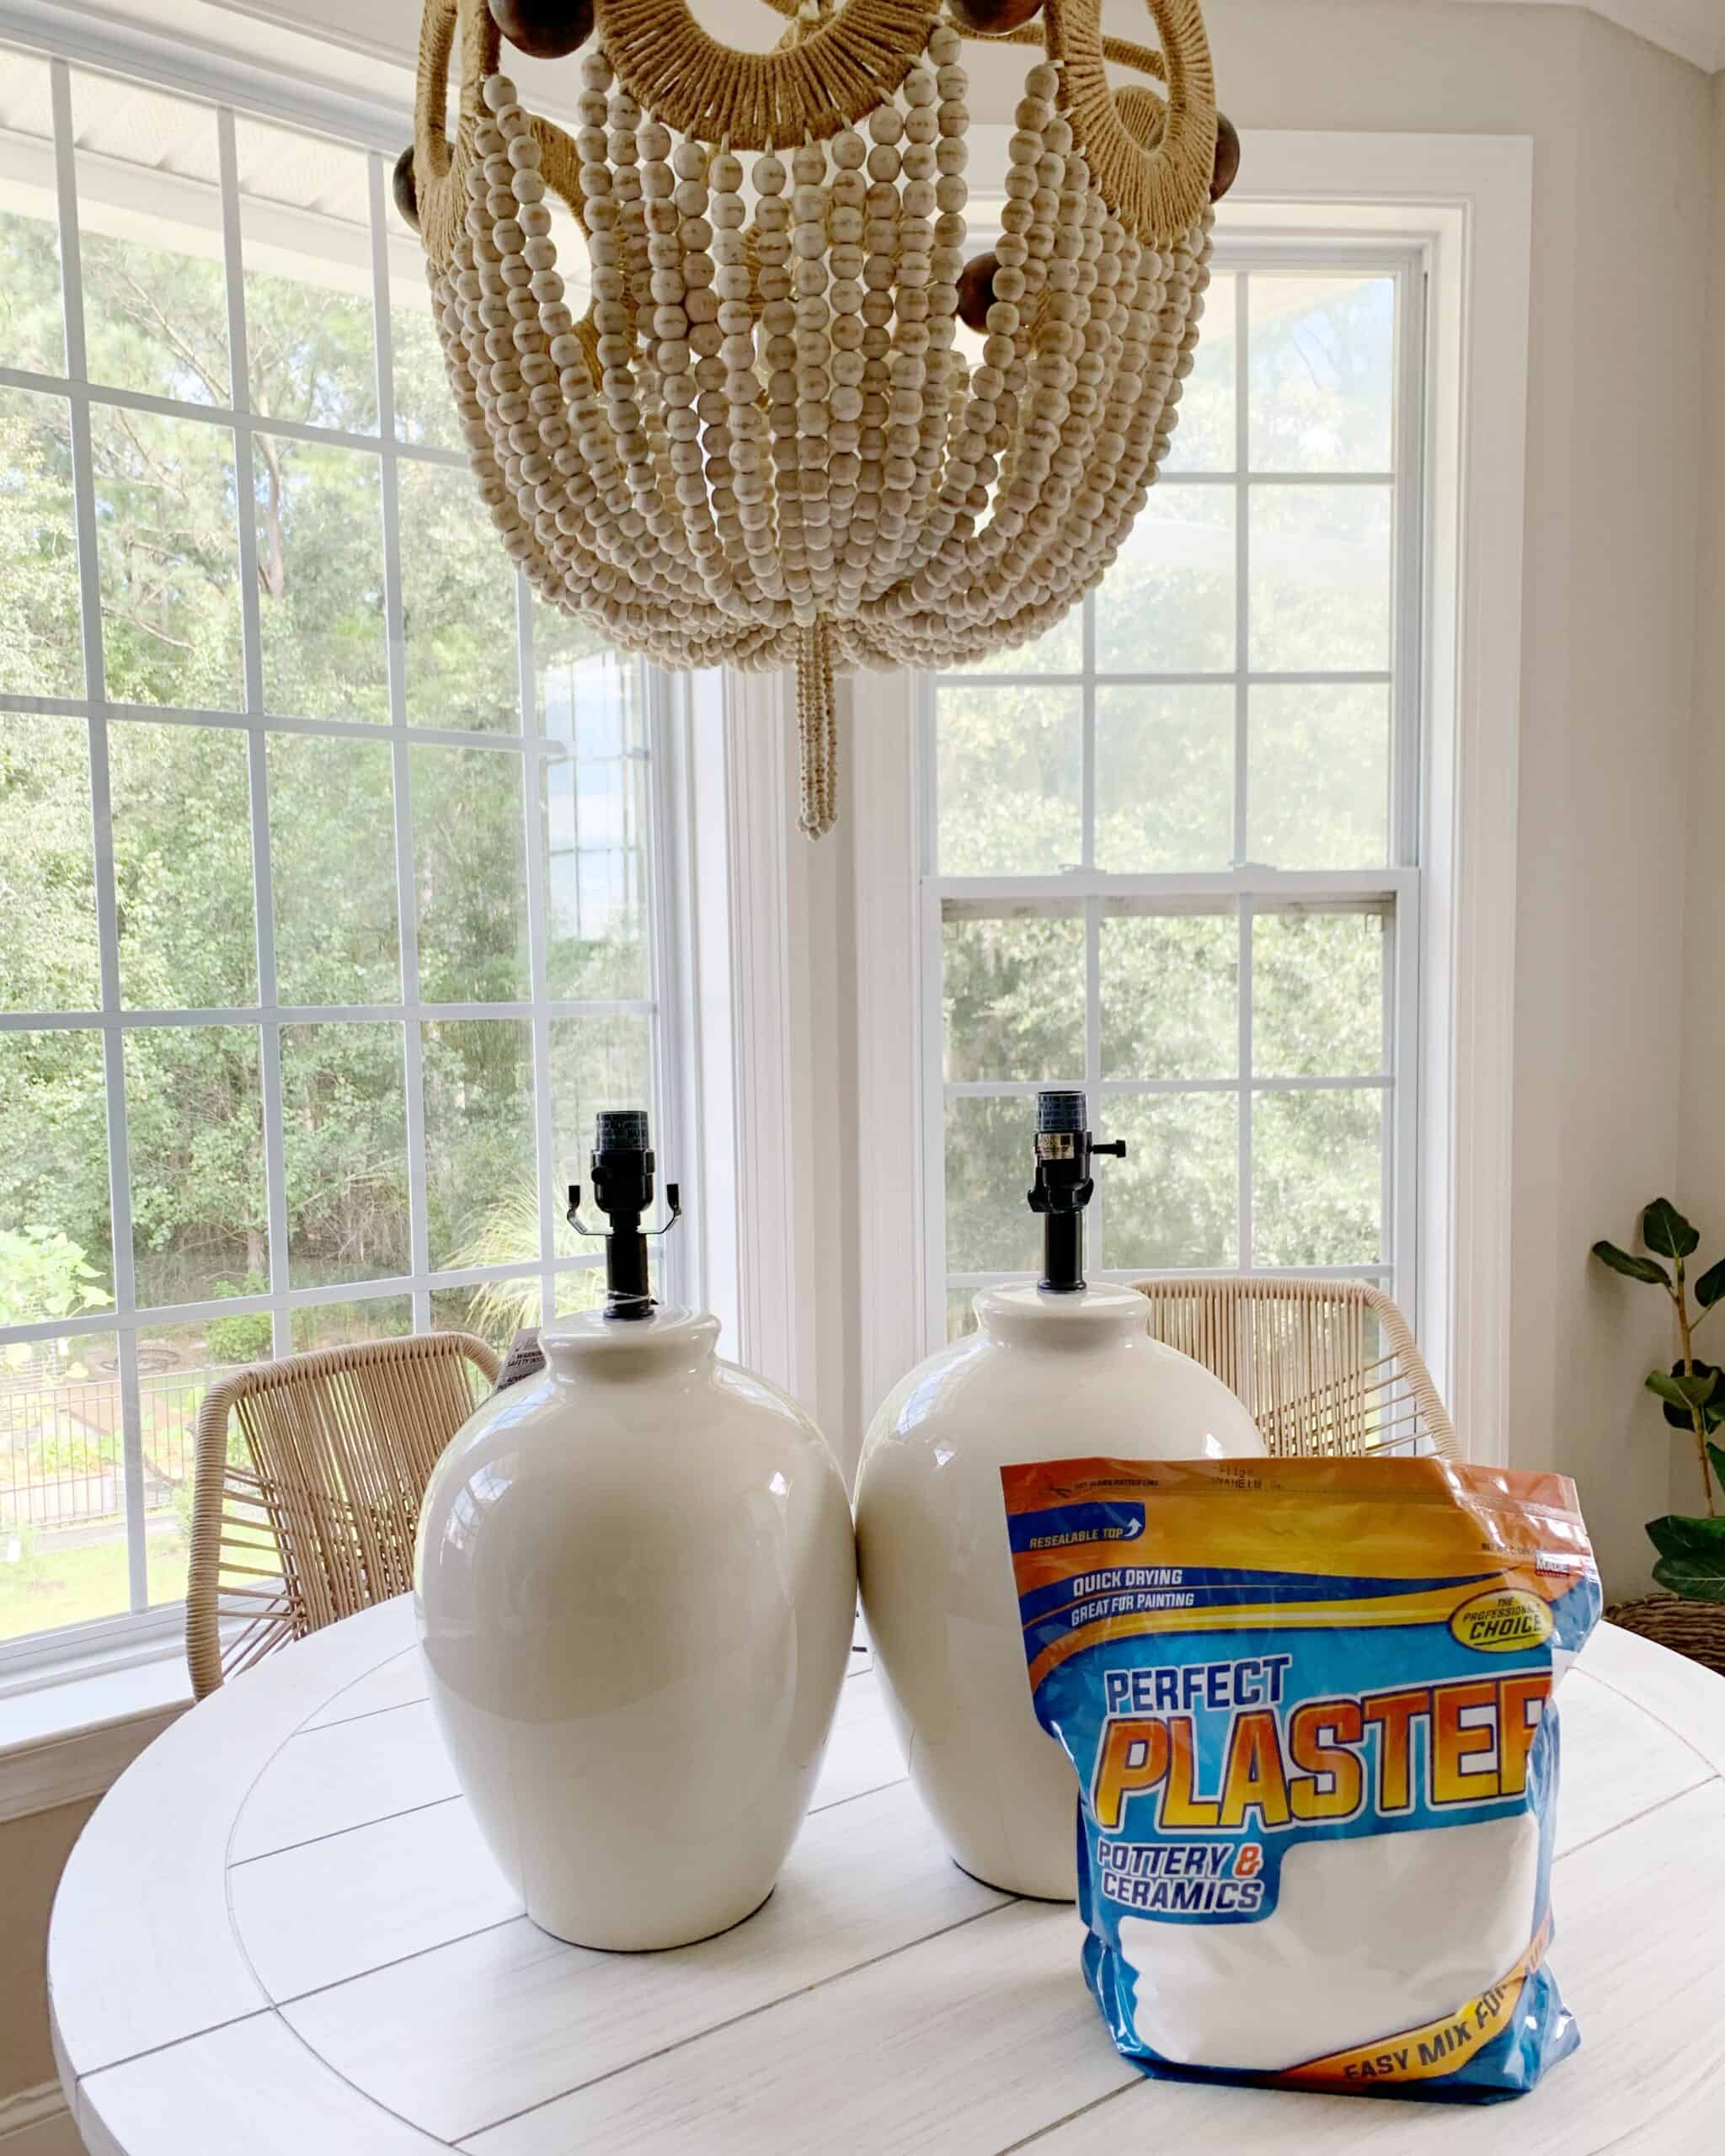 How I painted and used plaster on thrifted and cheap lamps to give them a designer look!  Pottery Barn ceramic lamp inspired DIY. #potterybarn #lamp #ceramiclamp #paintedlamp #whitelamps #plaster #plasterdiy #diyplaster